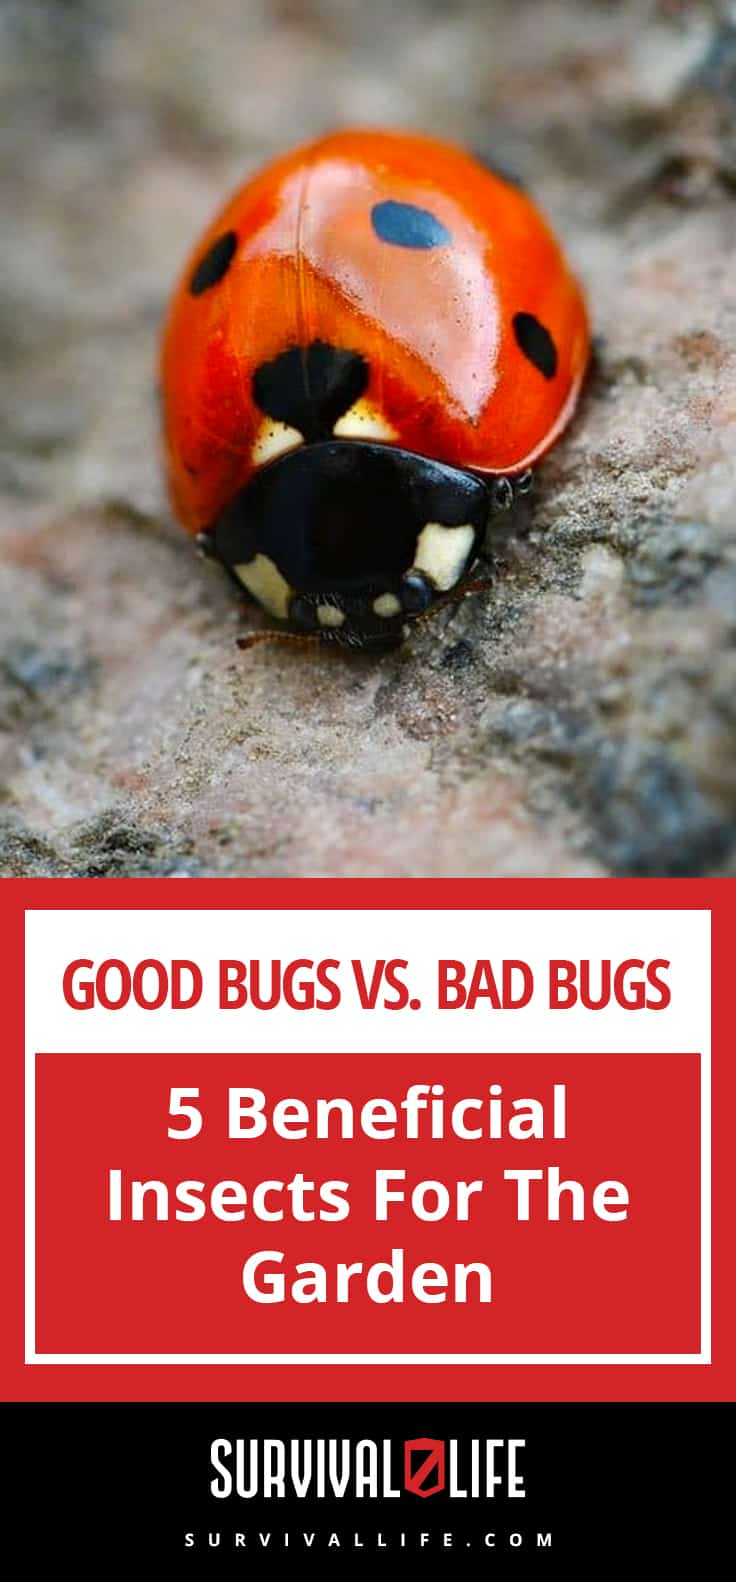 5 Beneficial Insects For The Garden: Good Bugs Vs. Bad Bugs